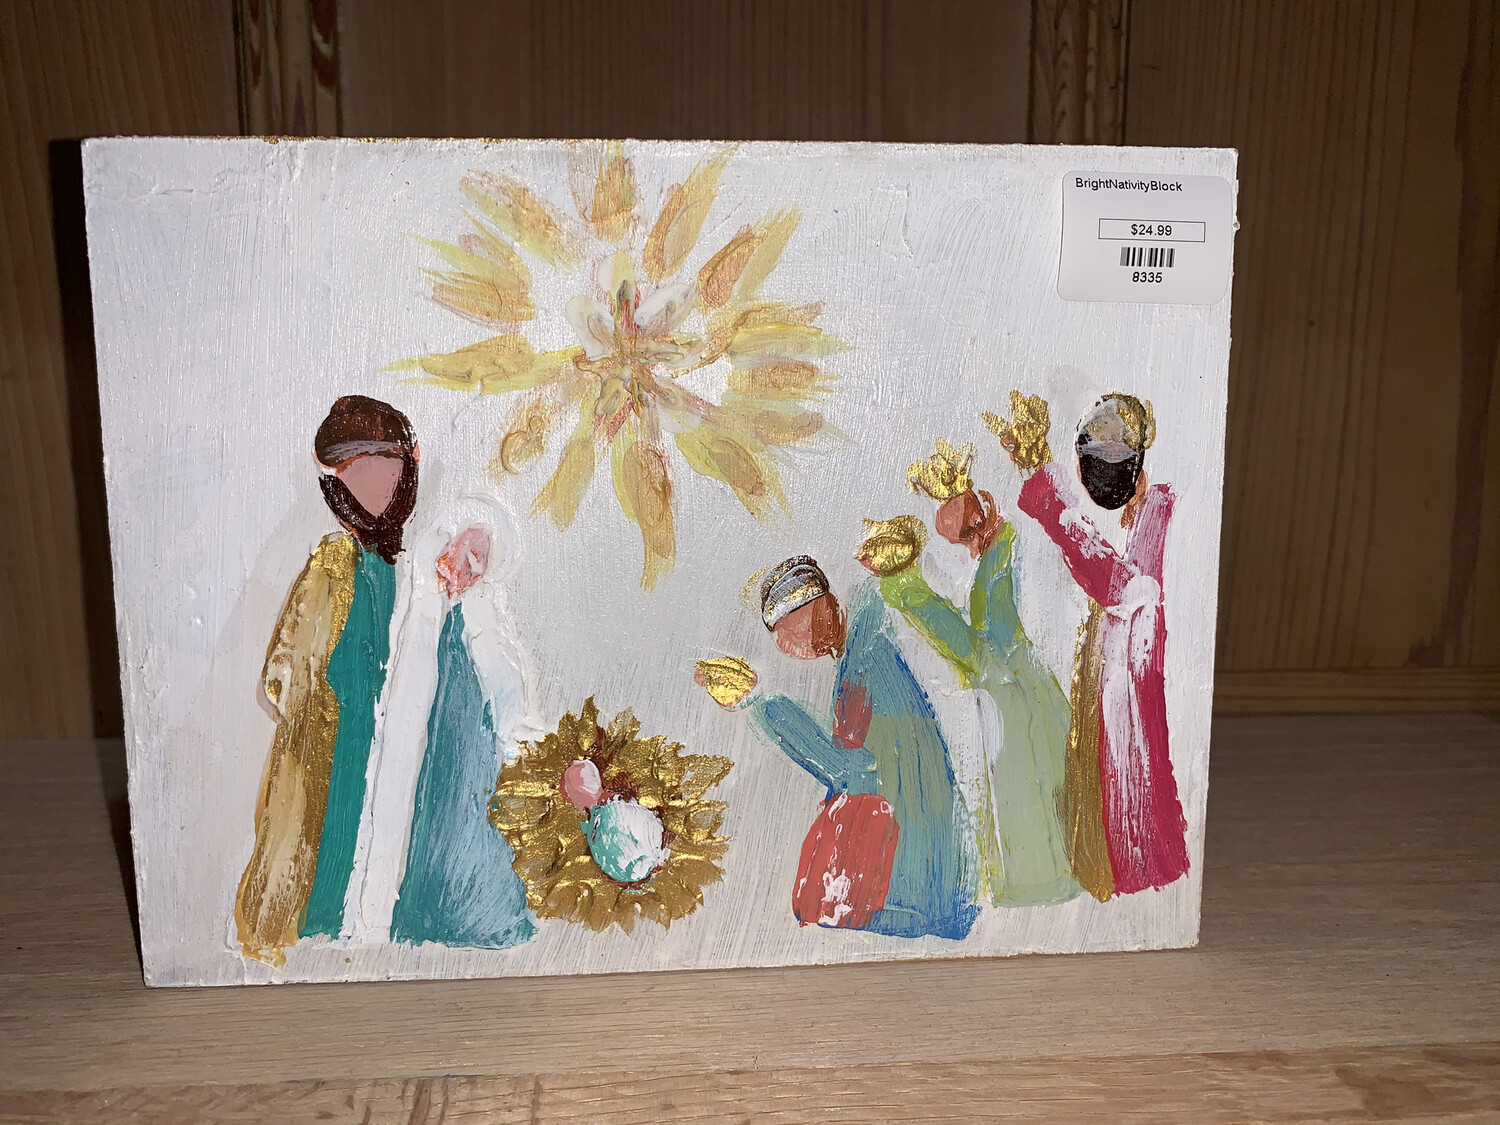 Bright Nativity Block Painting